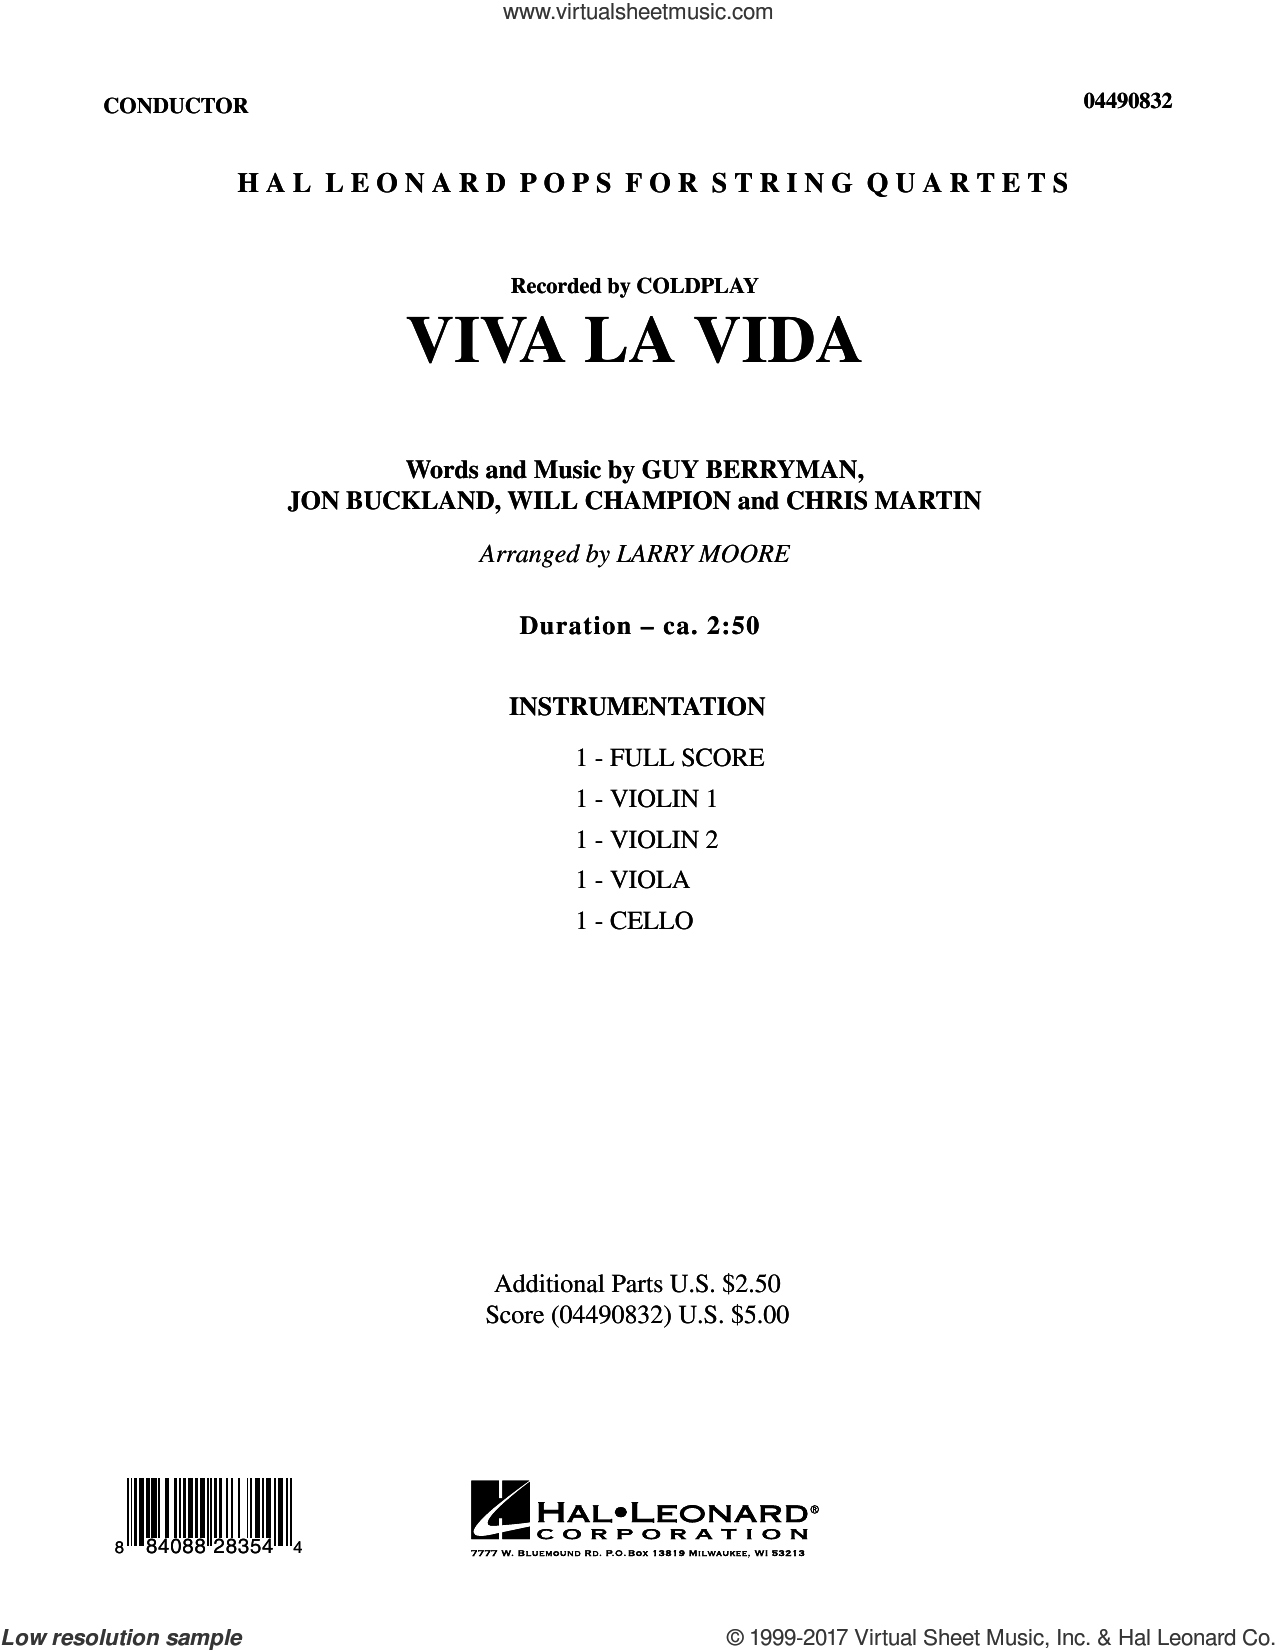 Viva La Vida (COMPLETE) sheet music for string quartet (Strings) by Coldplay, Chris Martin, Guy Berryman, Jon Buckland, Larry Moore and Will Champion, intermediate orchestra